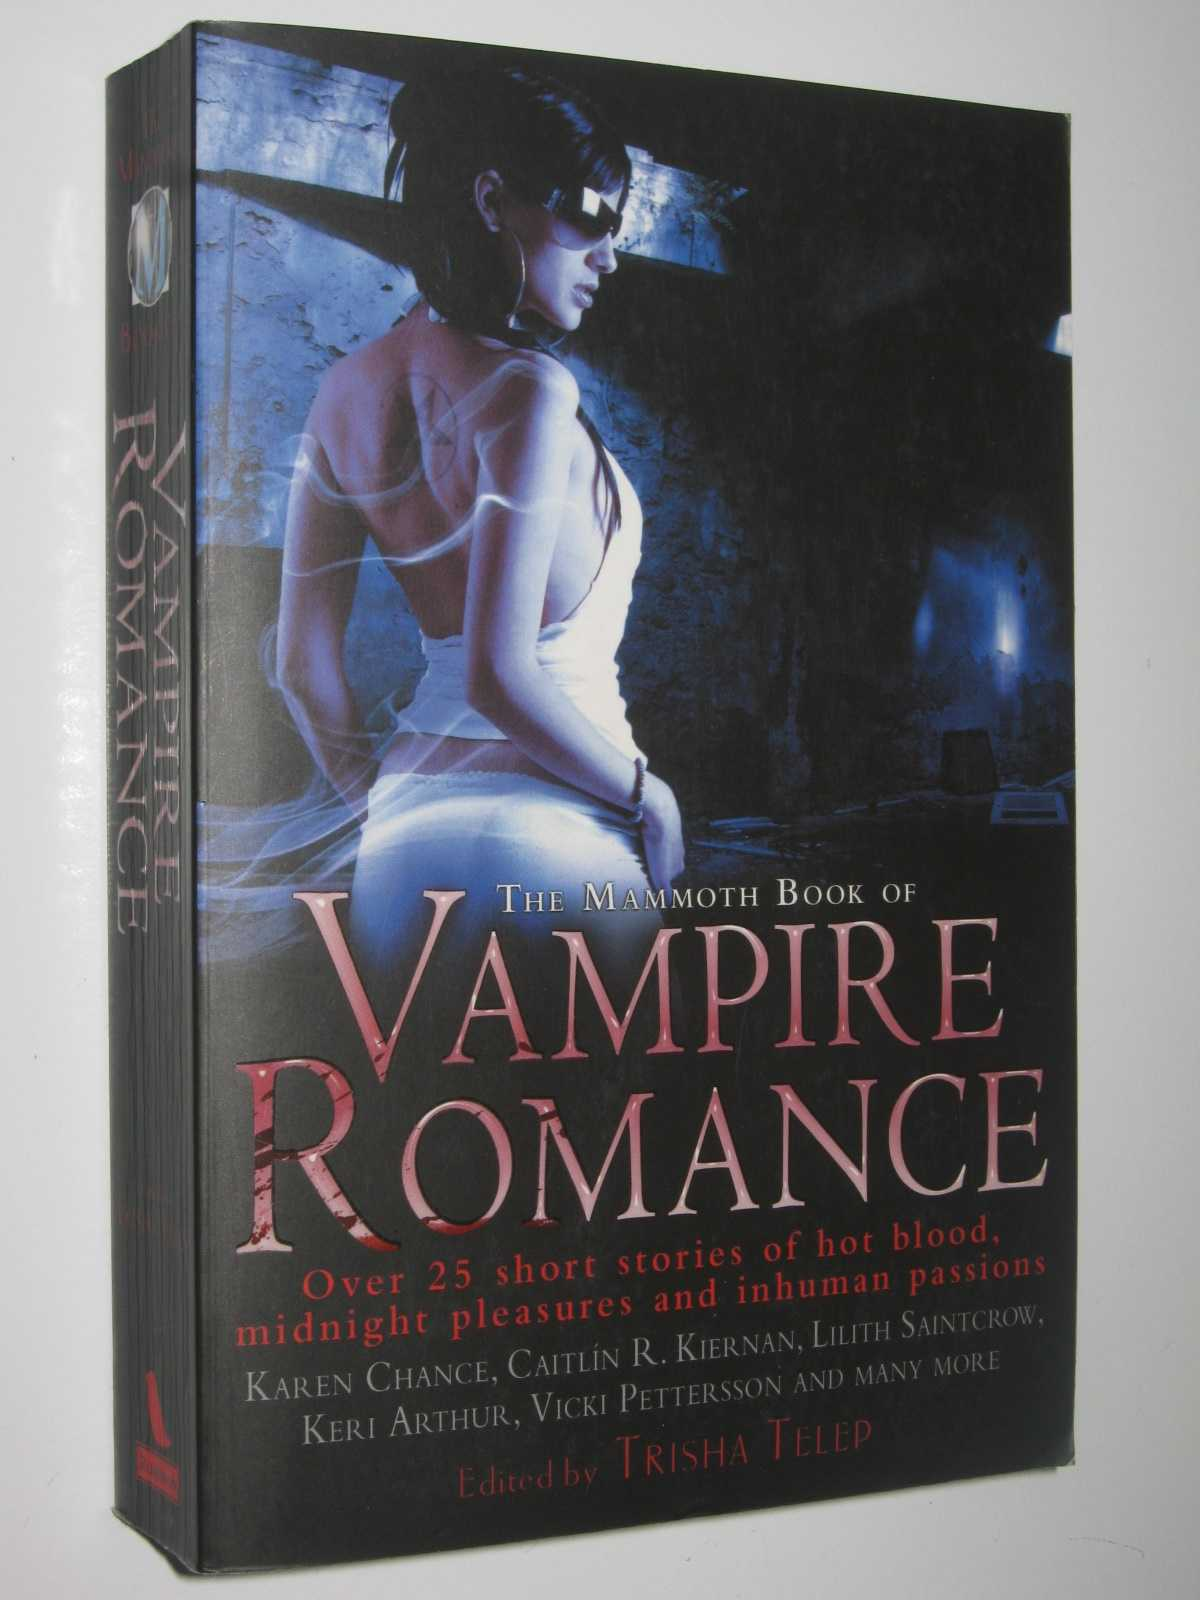 The Mammoth Book of Vampire Romance, Telep, Trisha (edited)